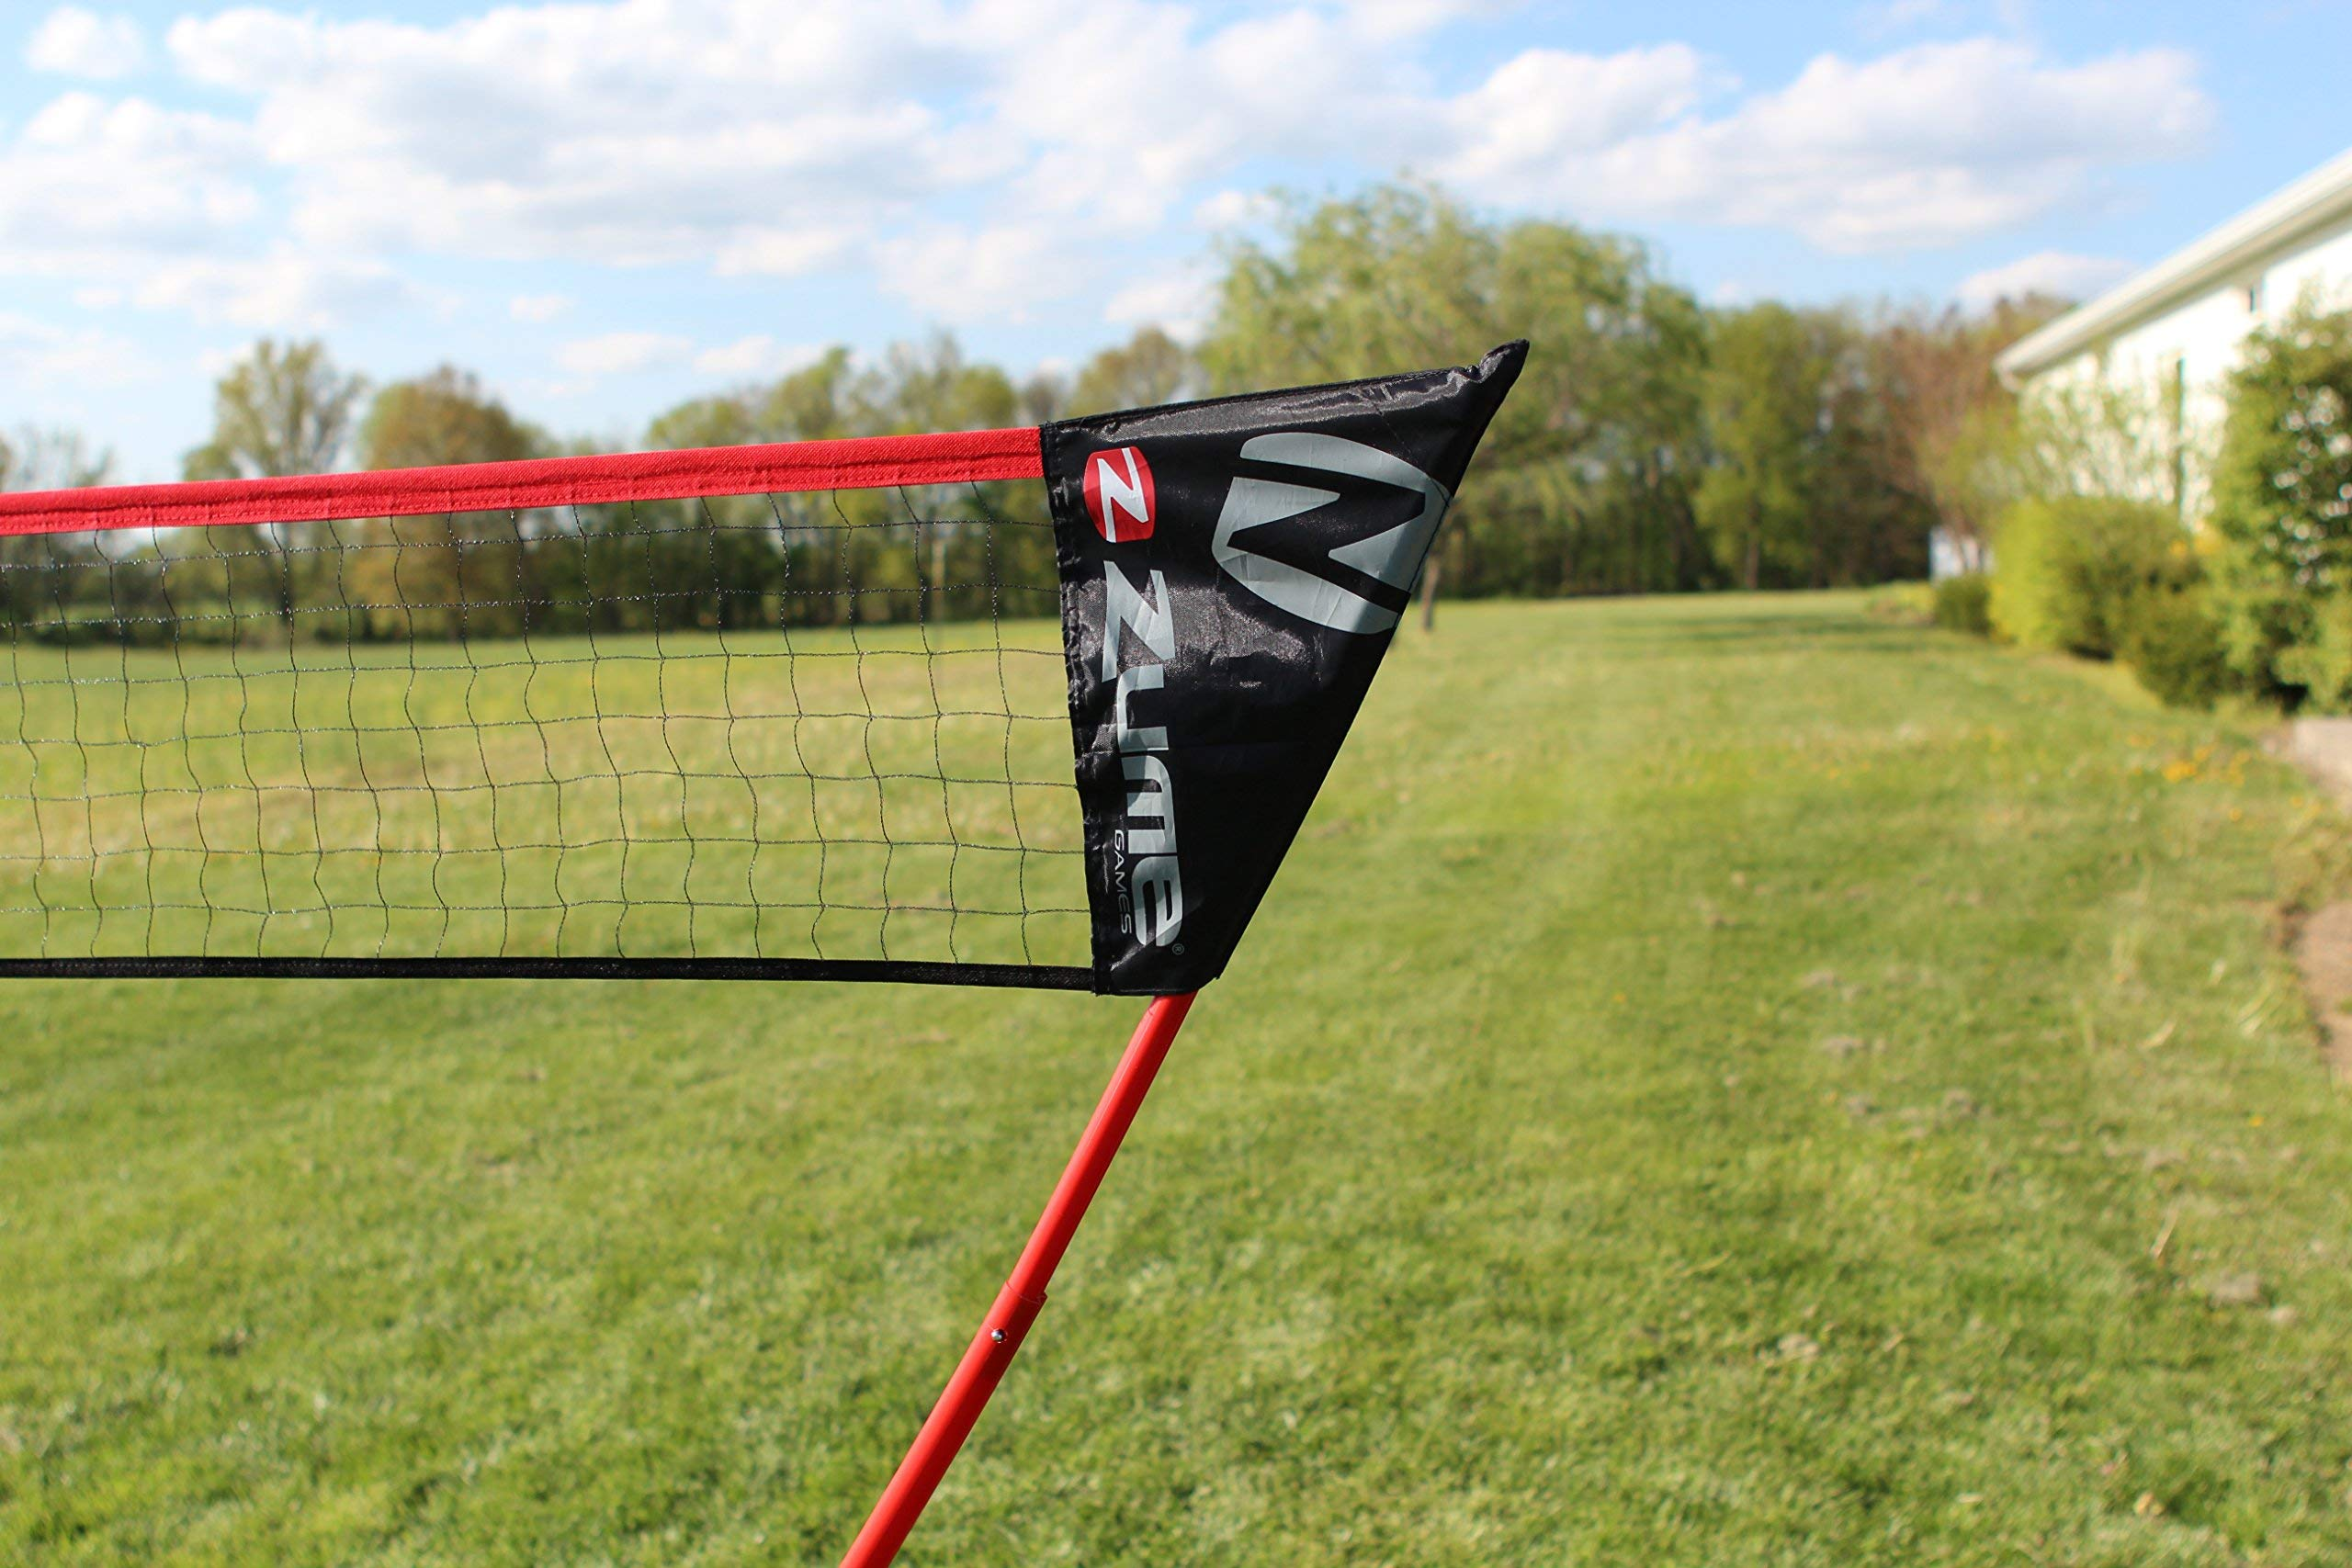 Zume Games Portable Badminton Set with Freestanding Base - Sets Up on Any Surface in Seconds - No Tools or Stakes Required (Renewed) by Zume (Image #9)